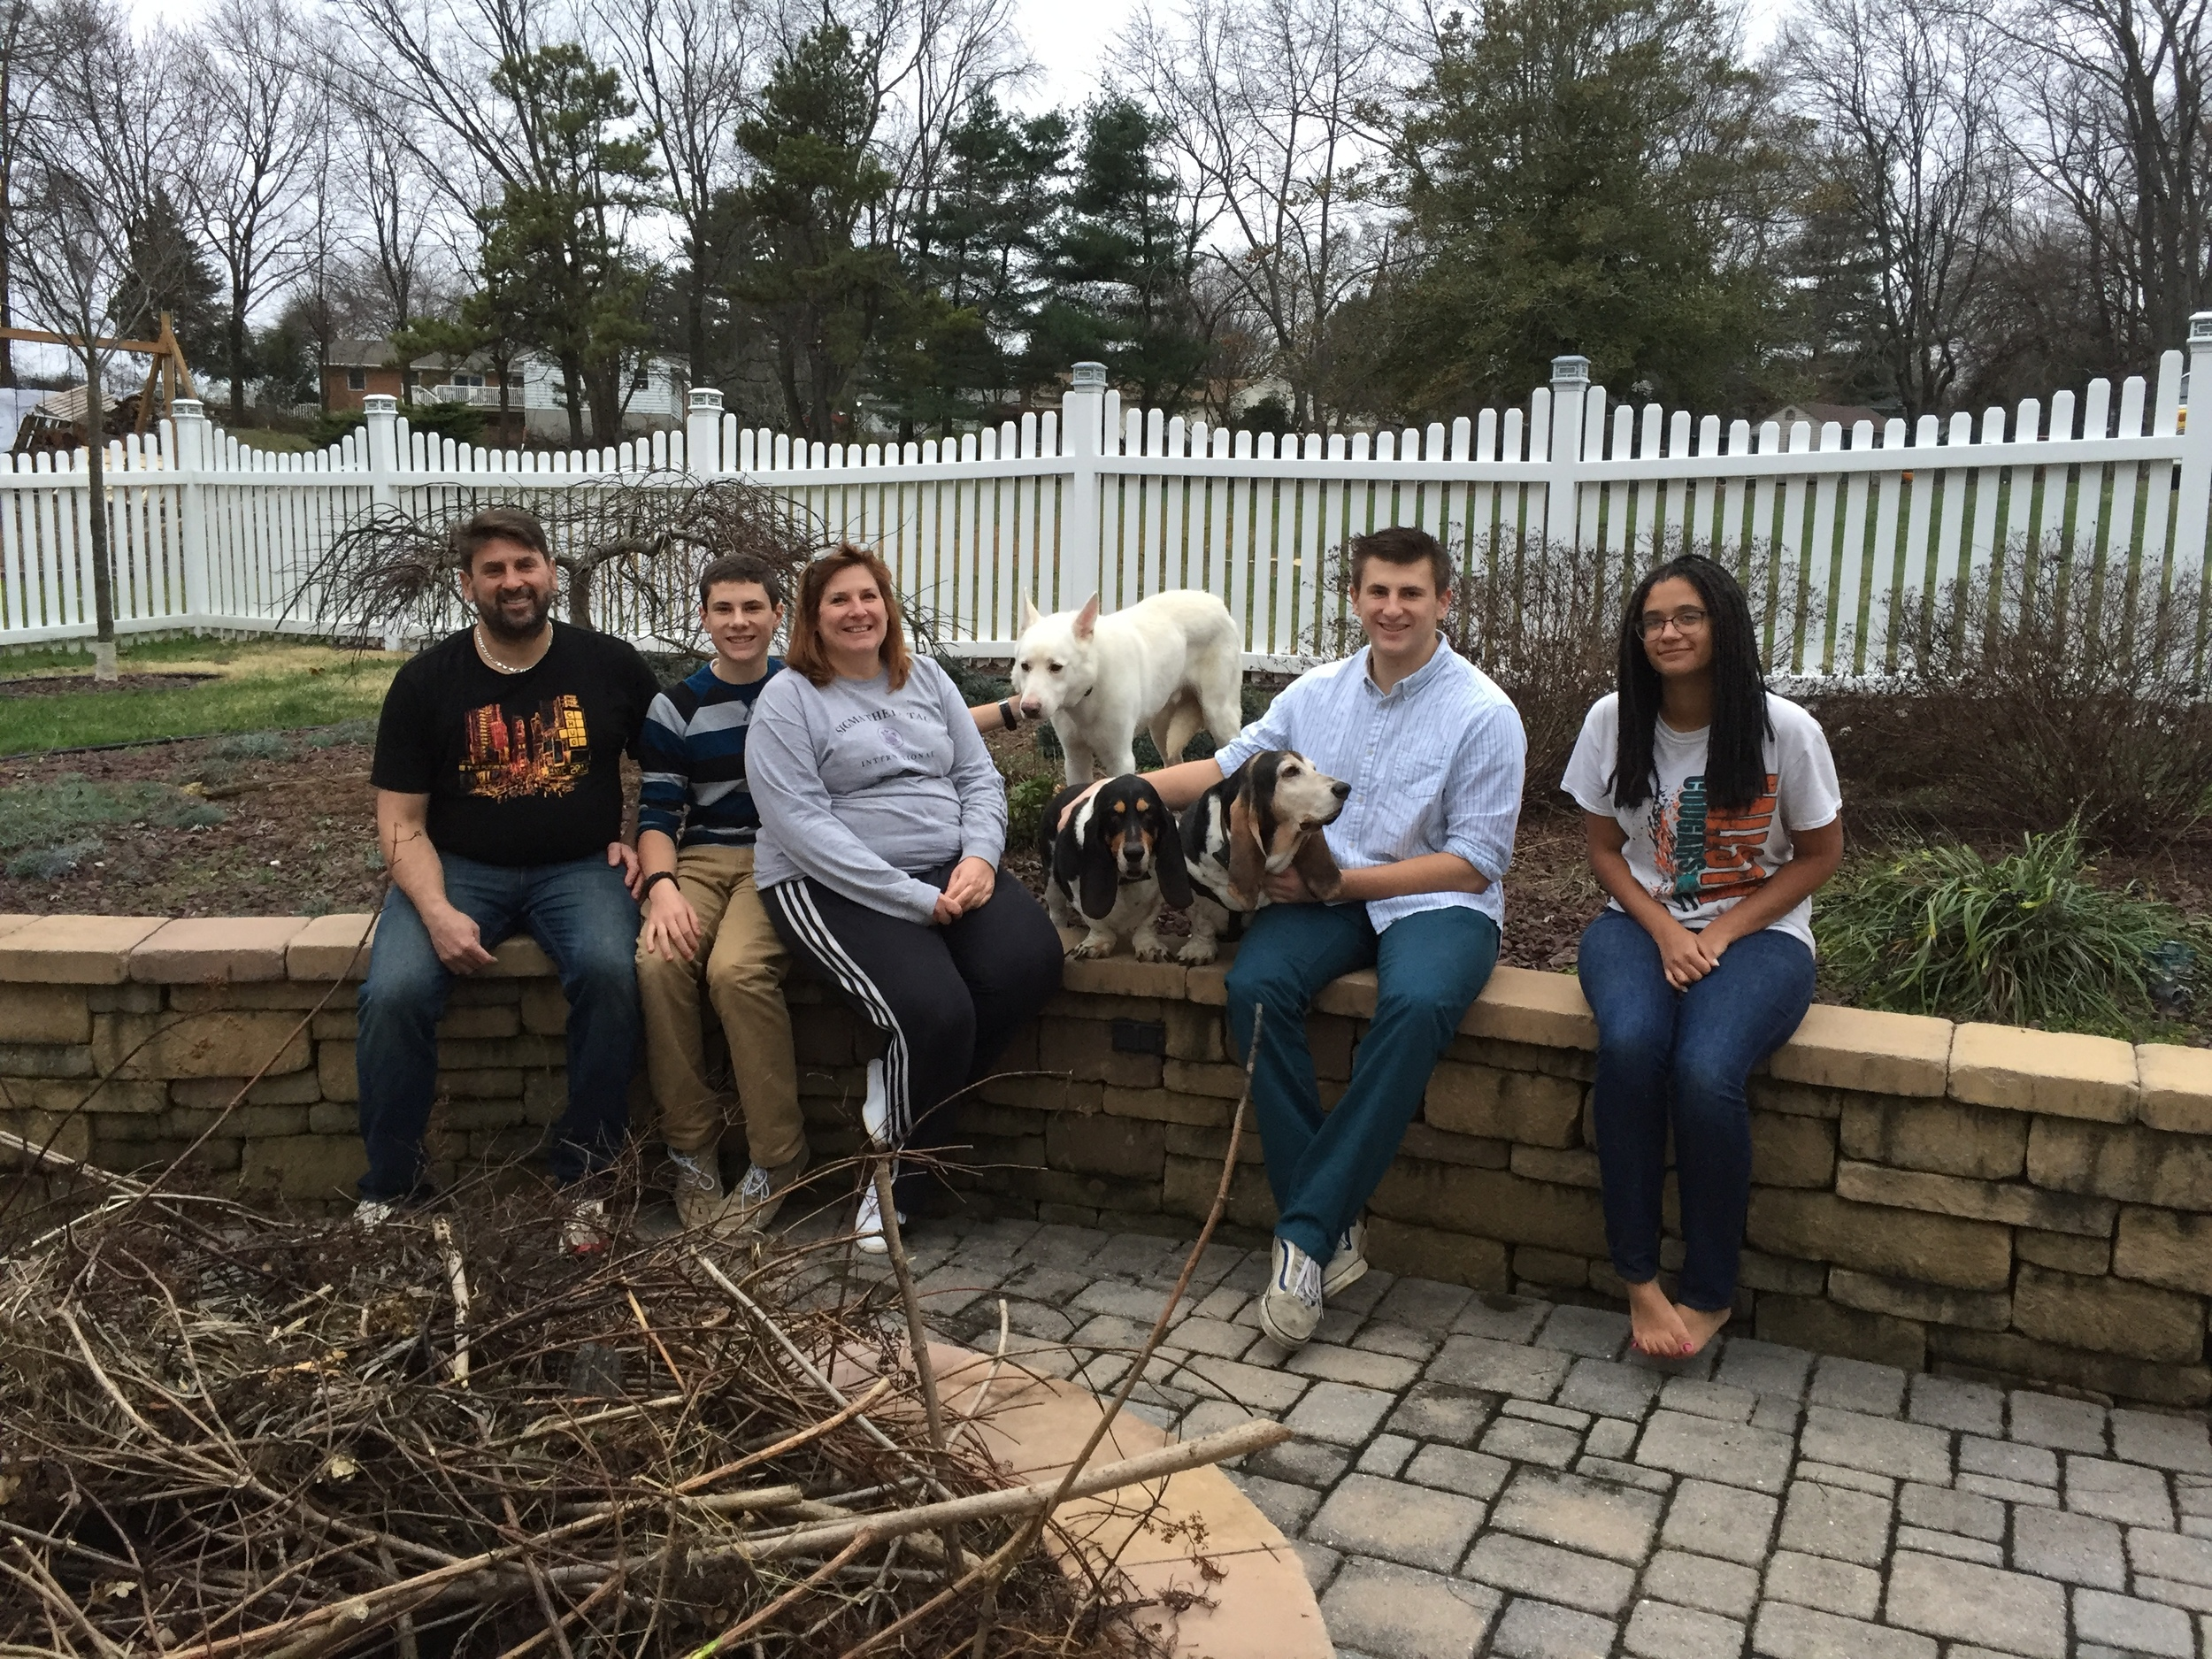 Henry, the white Shepherd, scored his happy furever after with the Yarworth family!